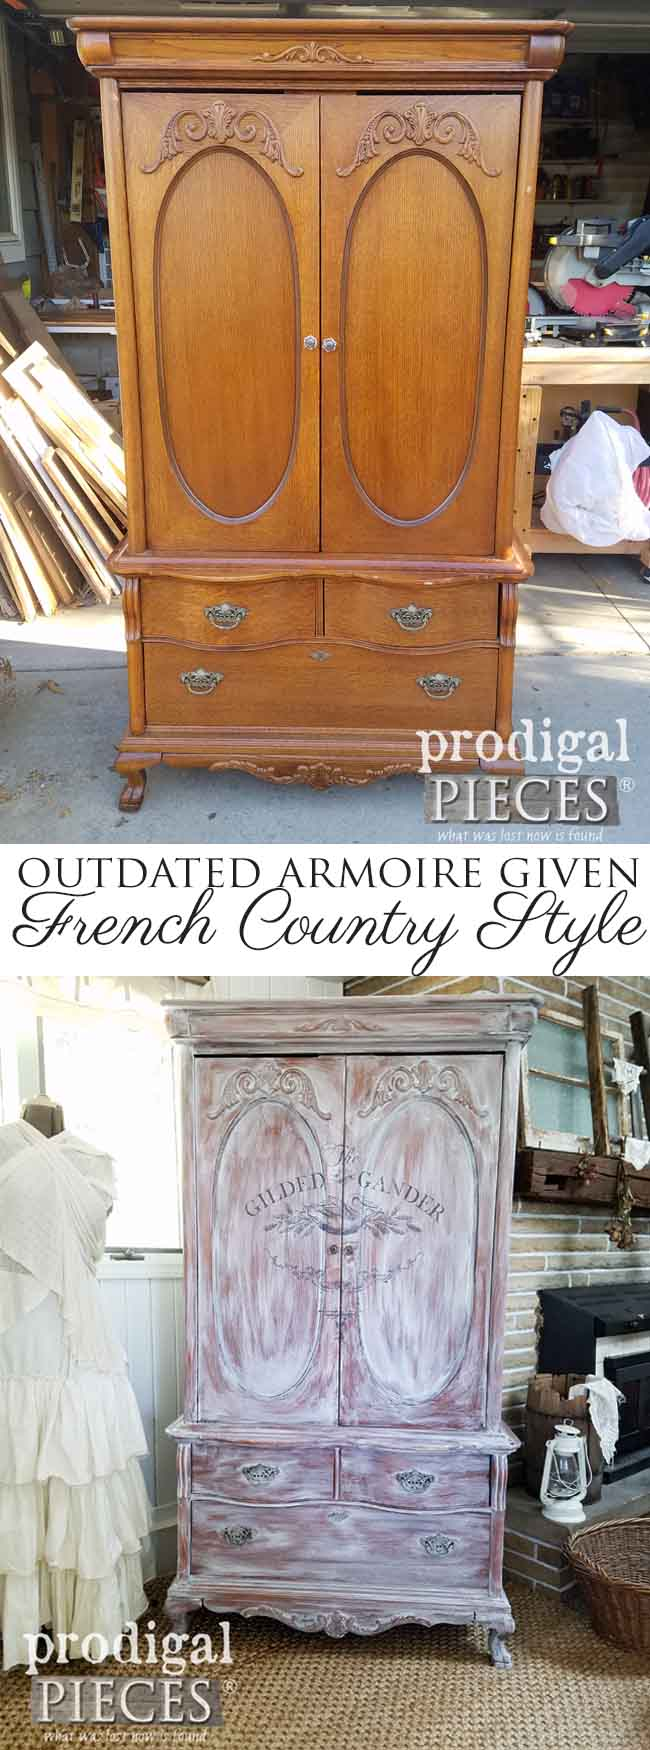 With NO PREP WORK, this French country armoire was given a new look in a day. Come see how easy it can be with the right tools and technique. Head to Prodigal Pieces | prodigalpieces.com